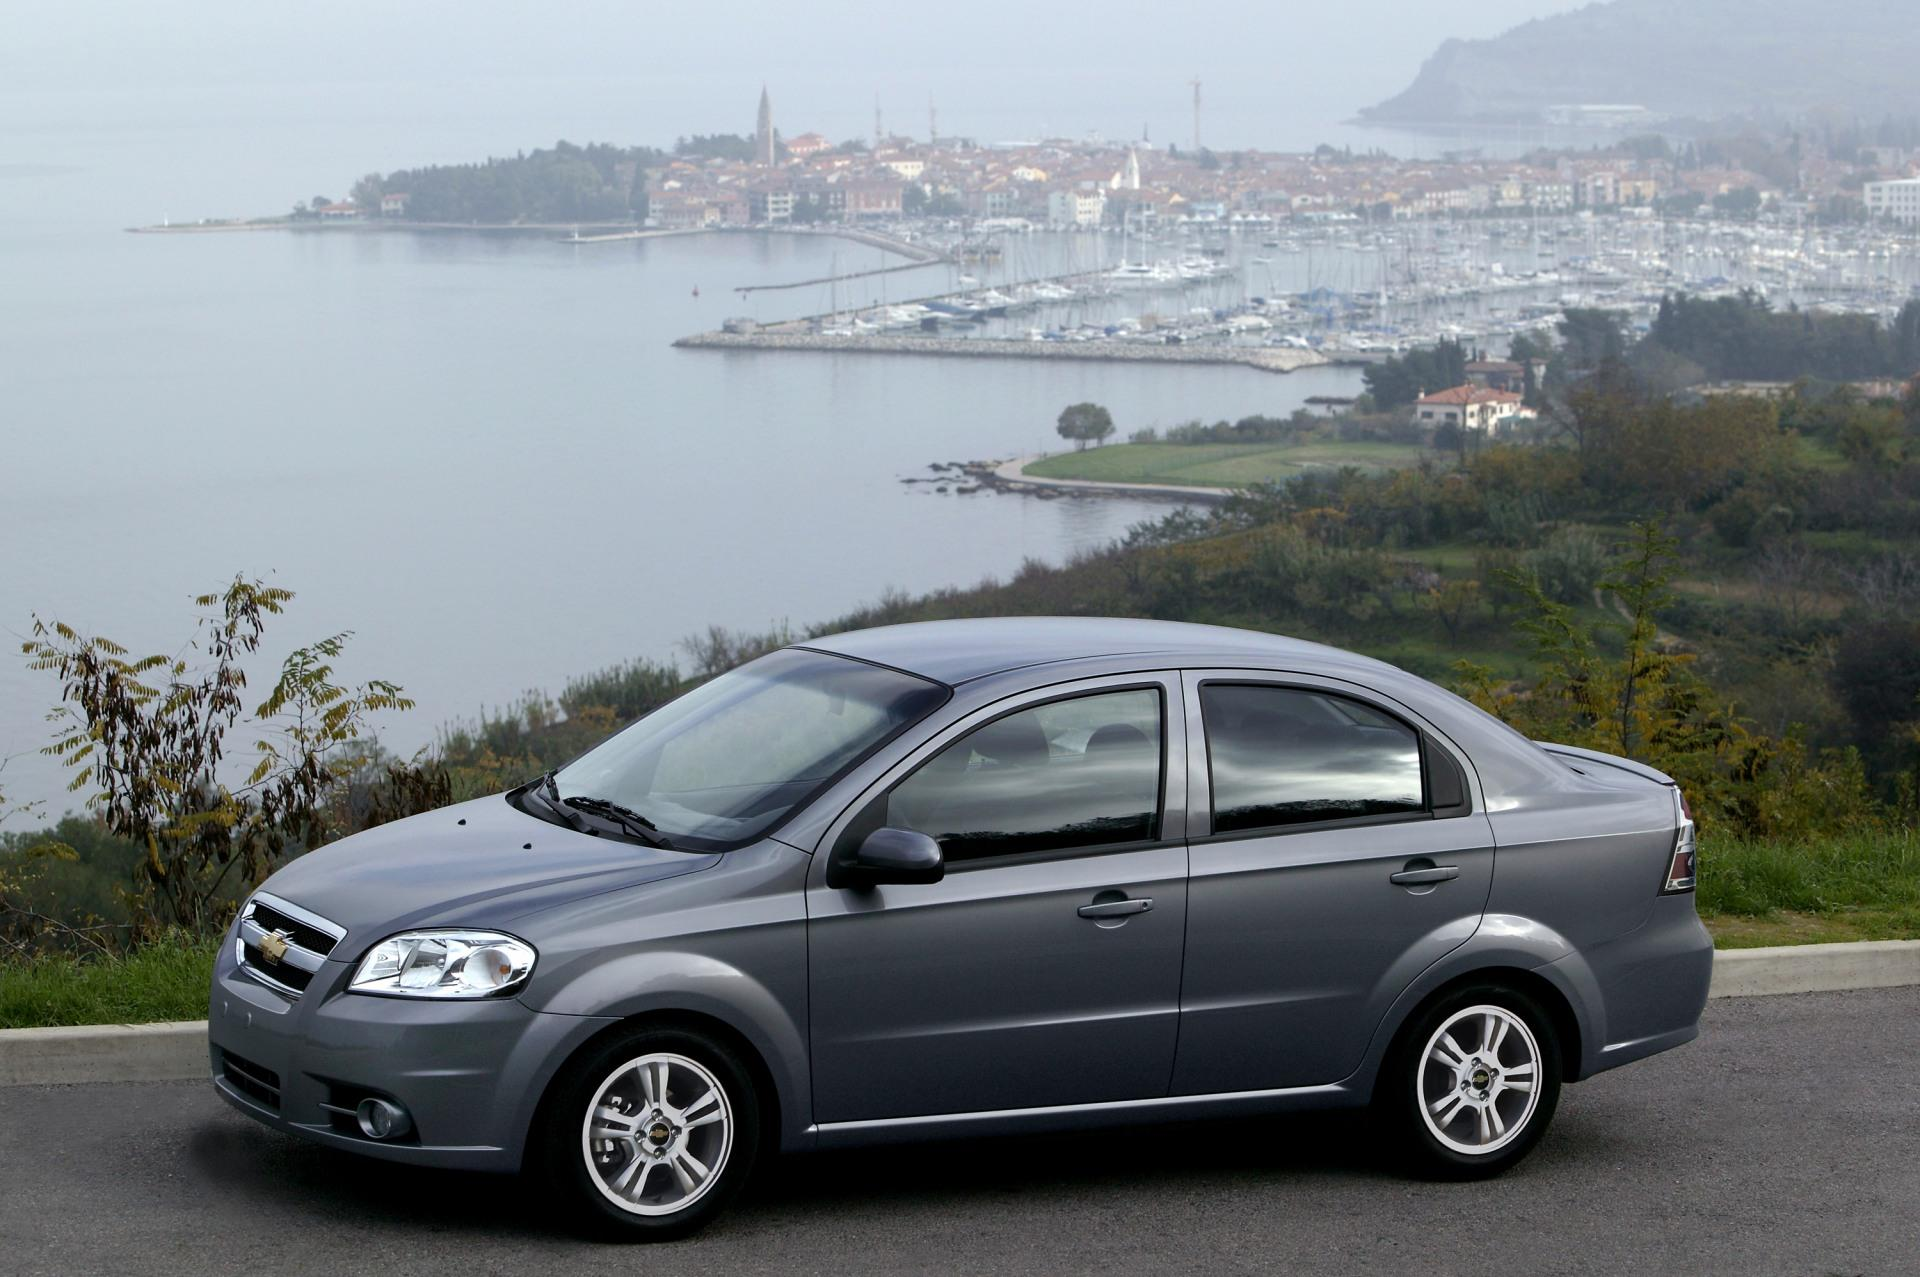 2011 chevrolet aveo news and information. Black Bedroom Furniture Sets. Home Design Ideas